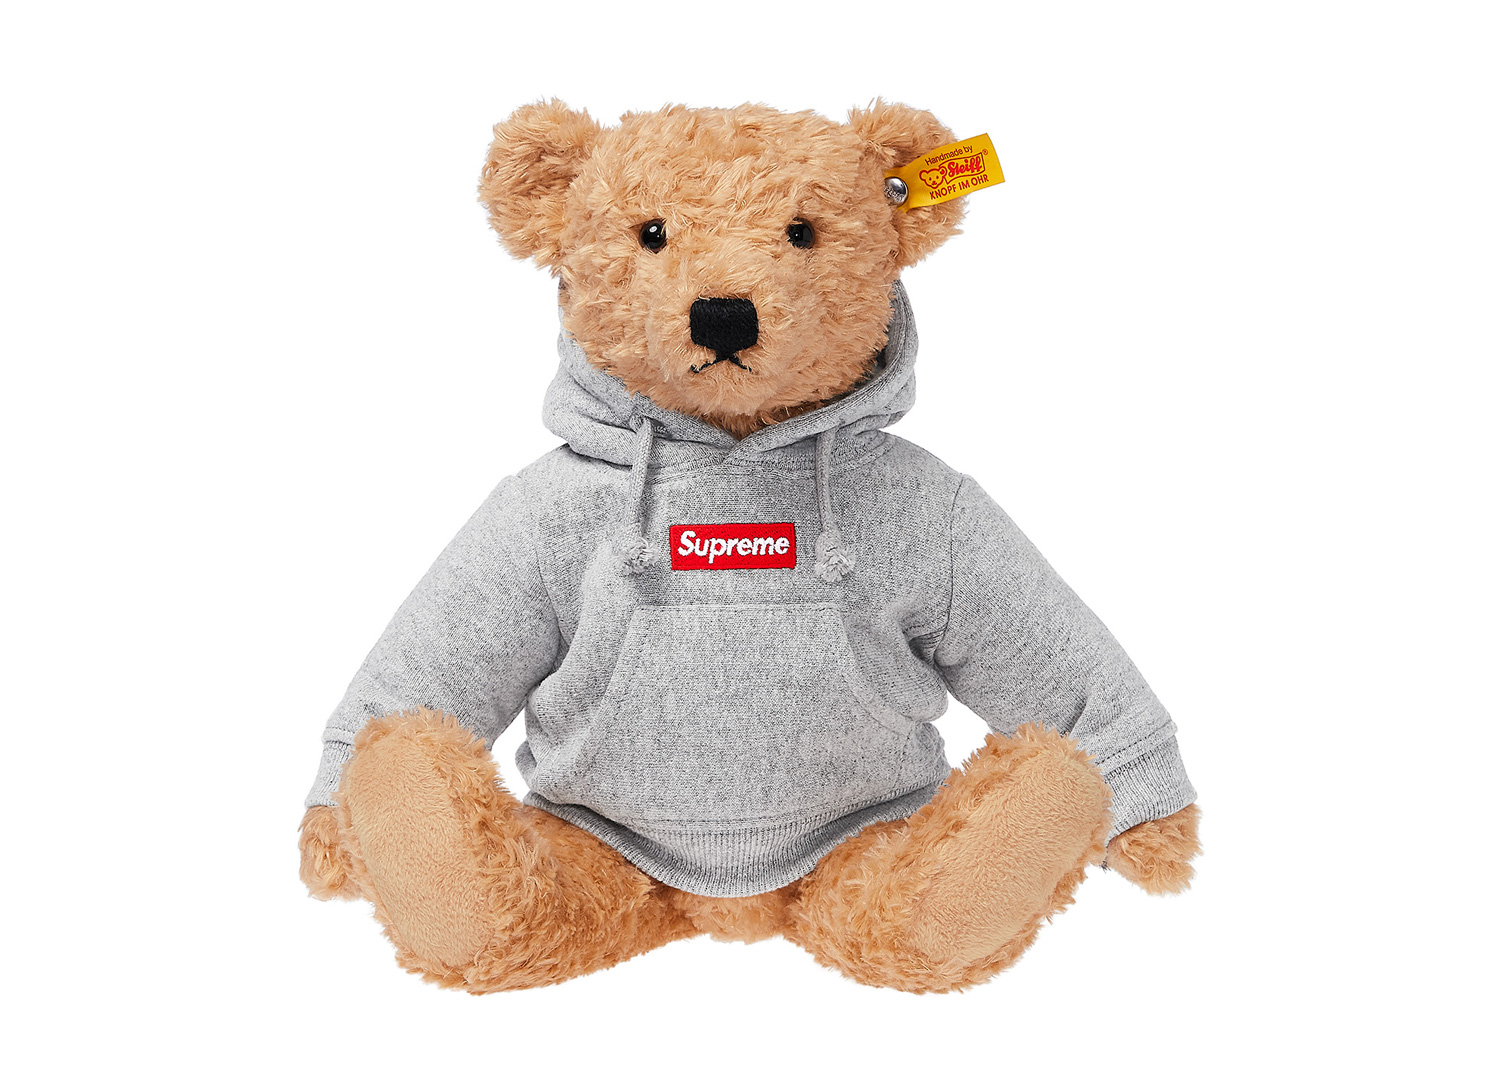 Supreme®/Steiff® Bear